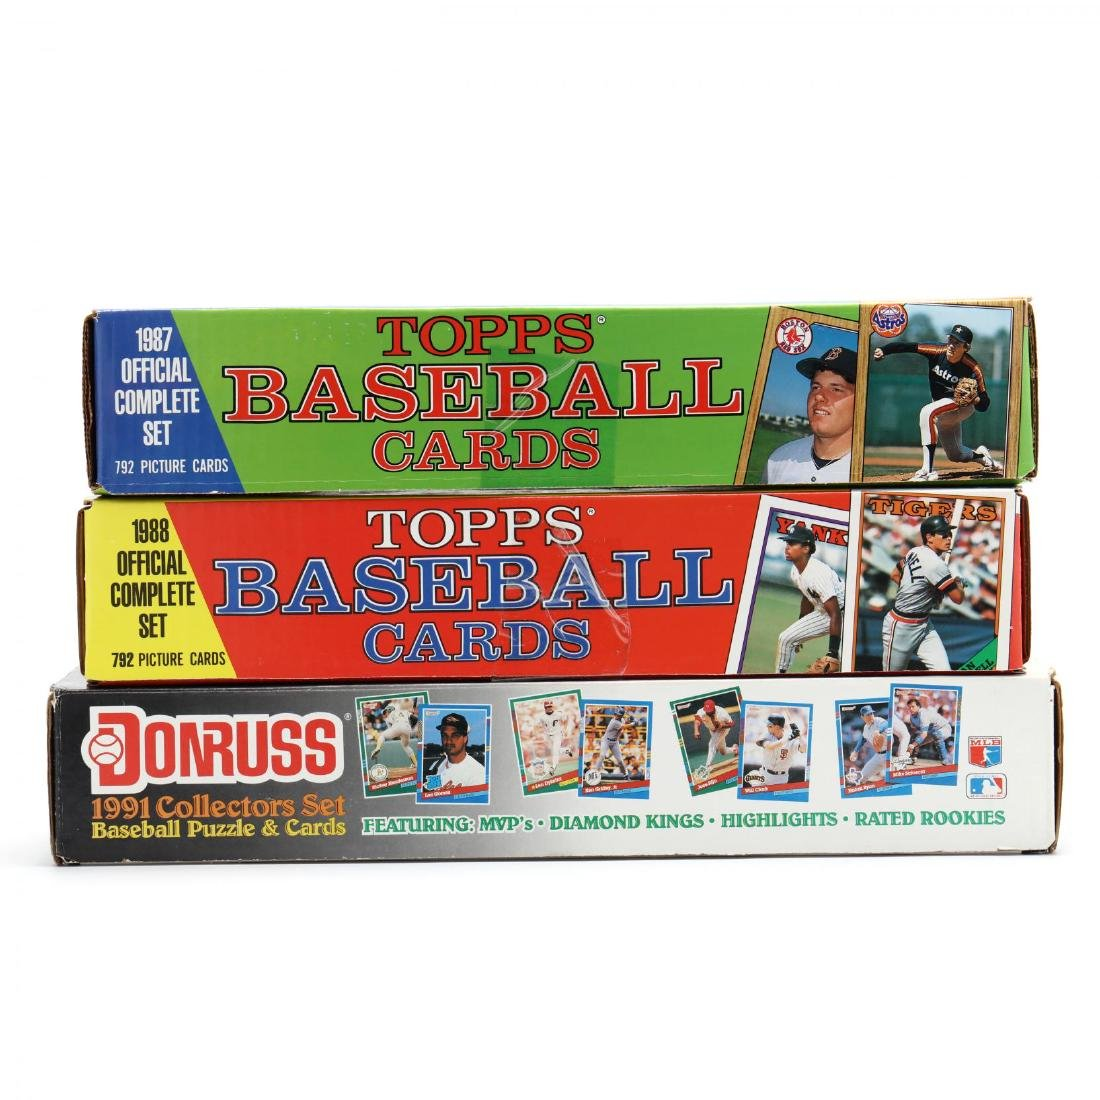 Five 1980-90s Boxed Baseball Cards by Topps, Donruss - 4